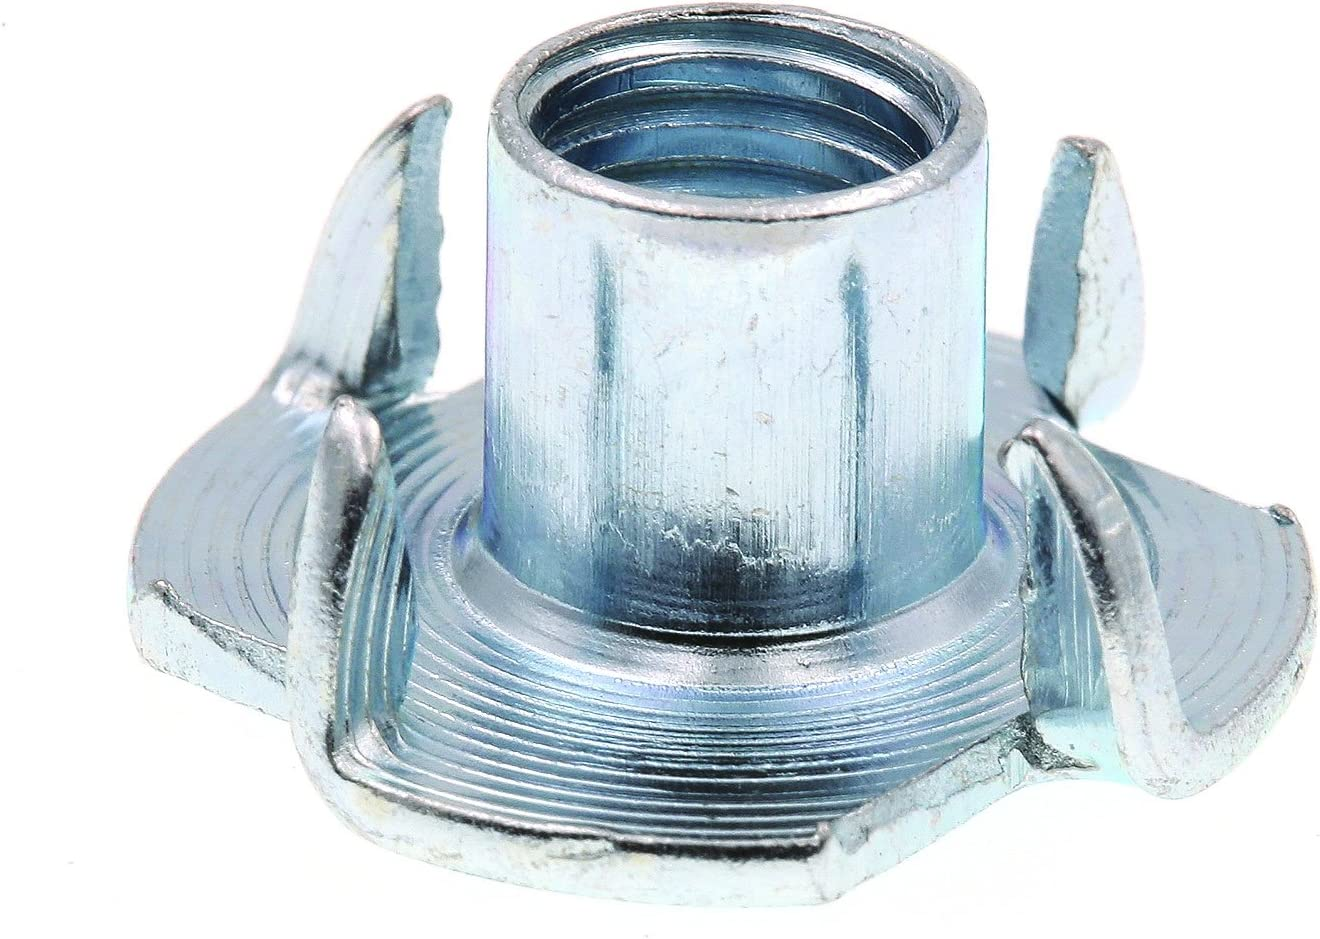 10-Pack Prime-Line 9078030 T-Nuts Zinc Plated Steel 3-Prong 5//16 in.-18 X 7//16 in.